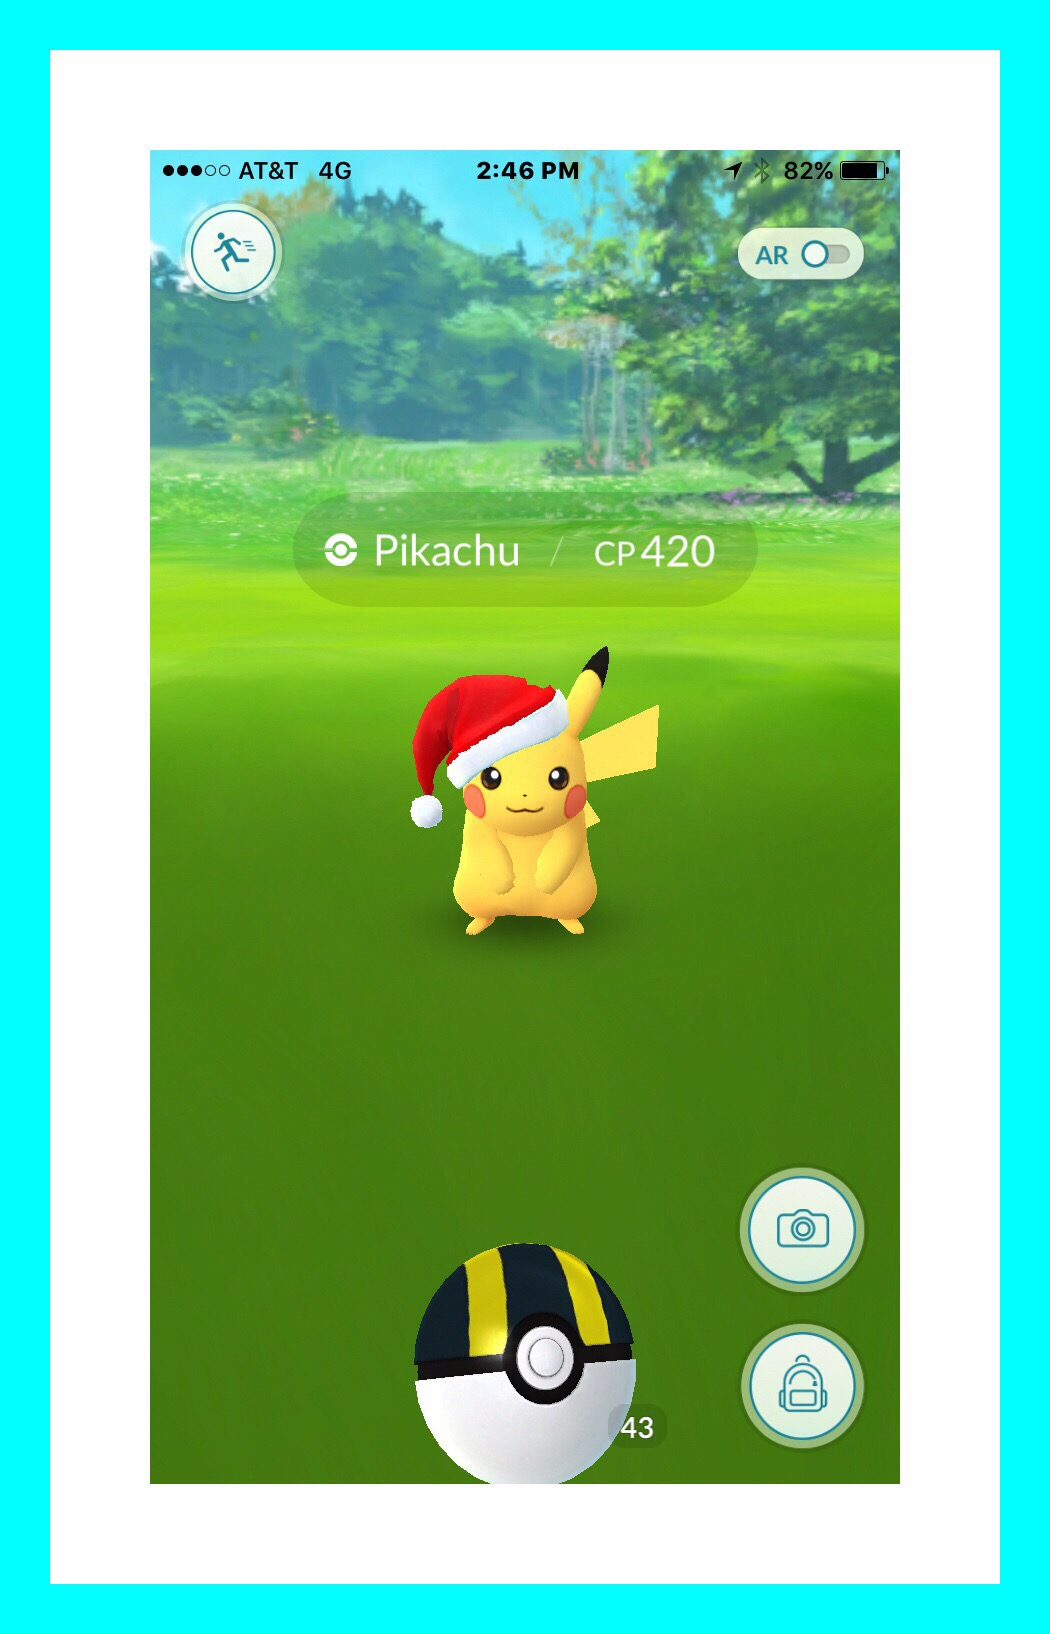 Christmas Update Pokemon Go.Are Pokemongo Gift Boxes Worth It Tips To Catch Pikachu